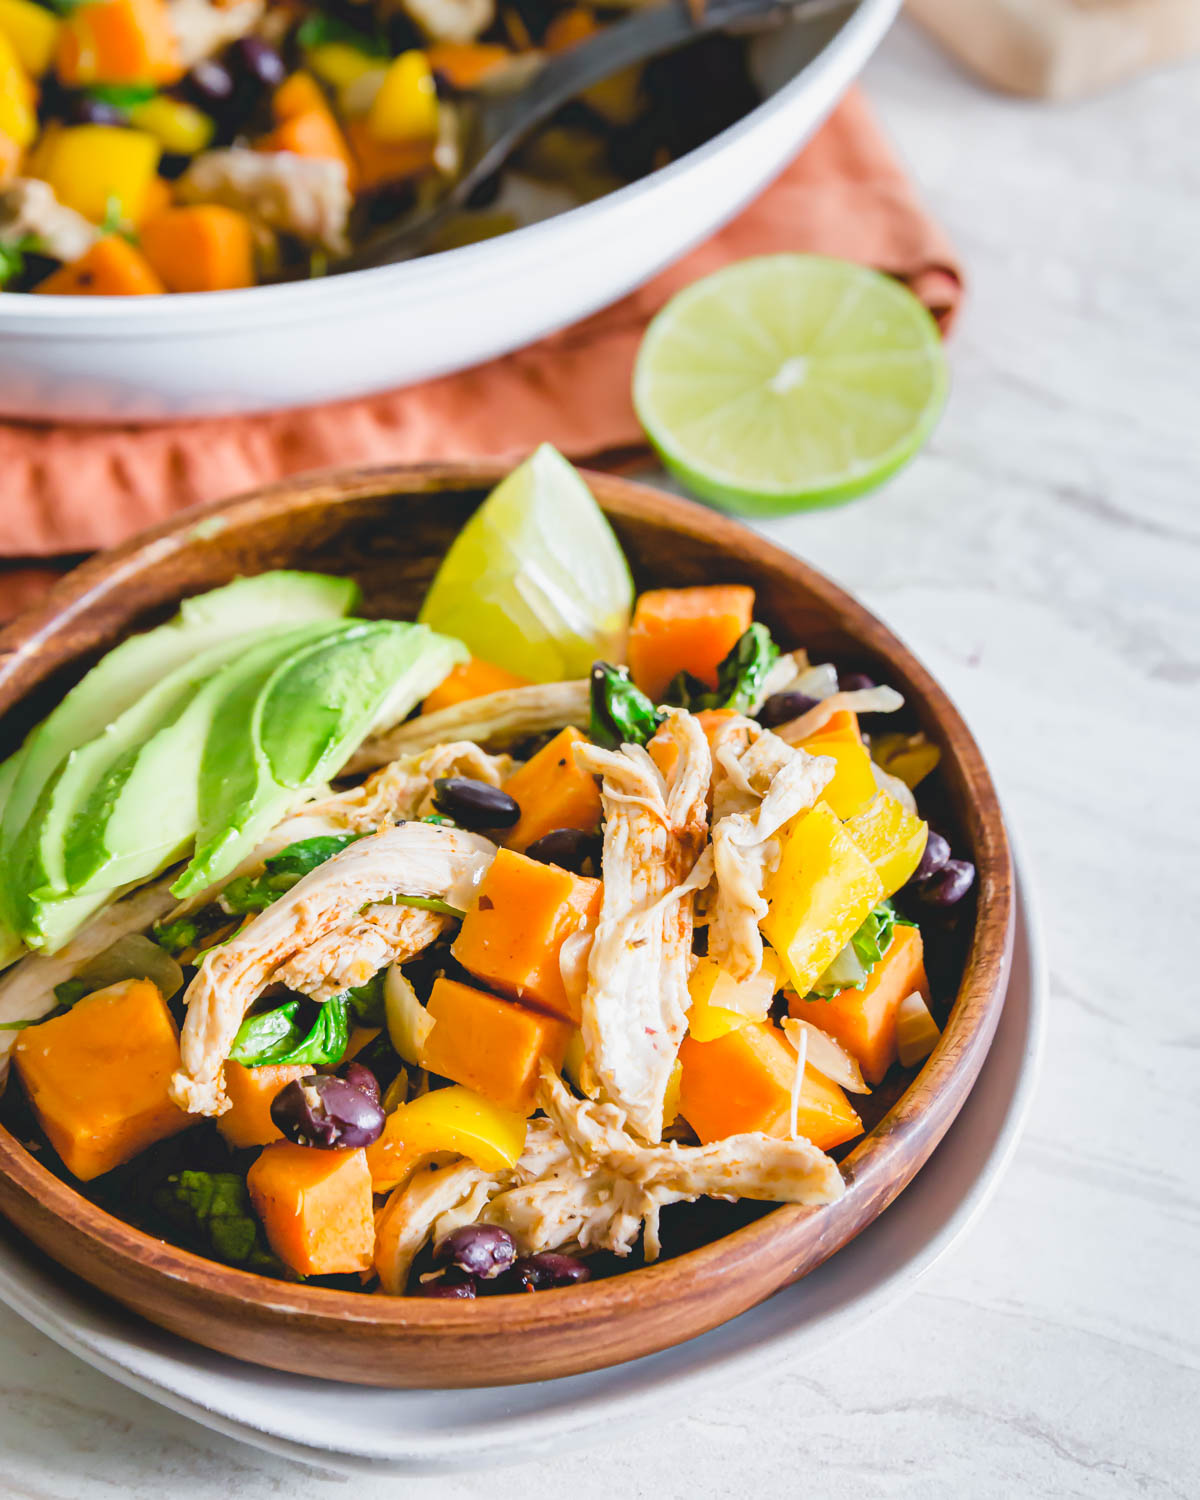 This easy turkey sweet potato skillet comes together in just about 20 minutes in one pan. Served with lime wedges and avocado slices.